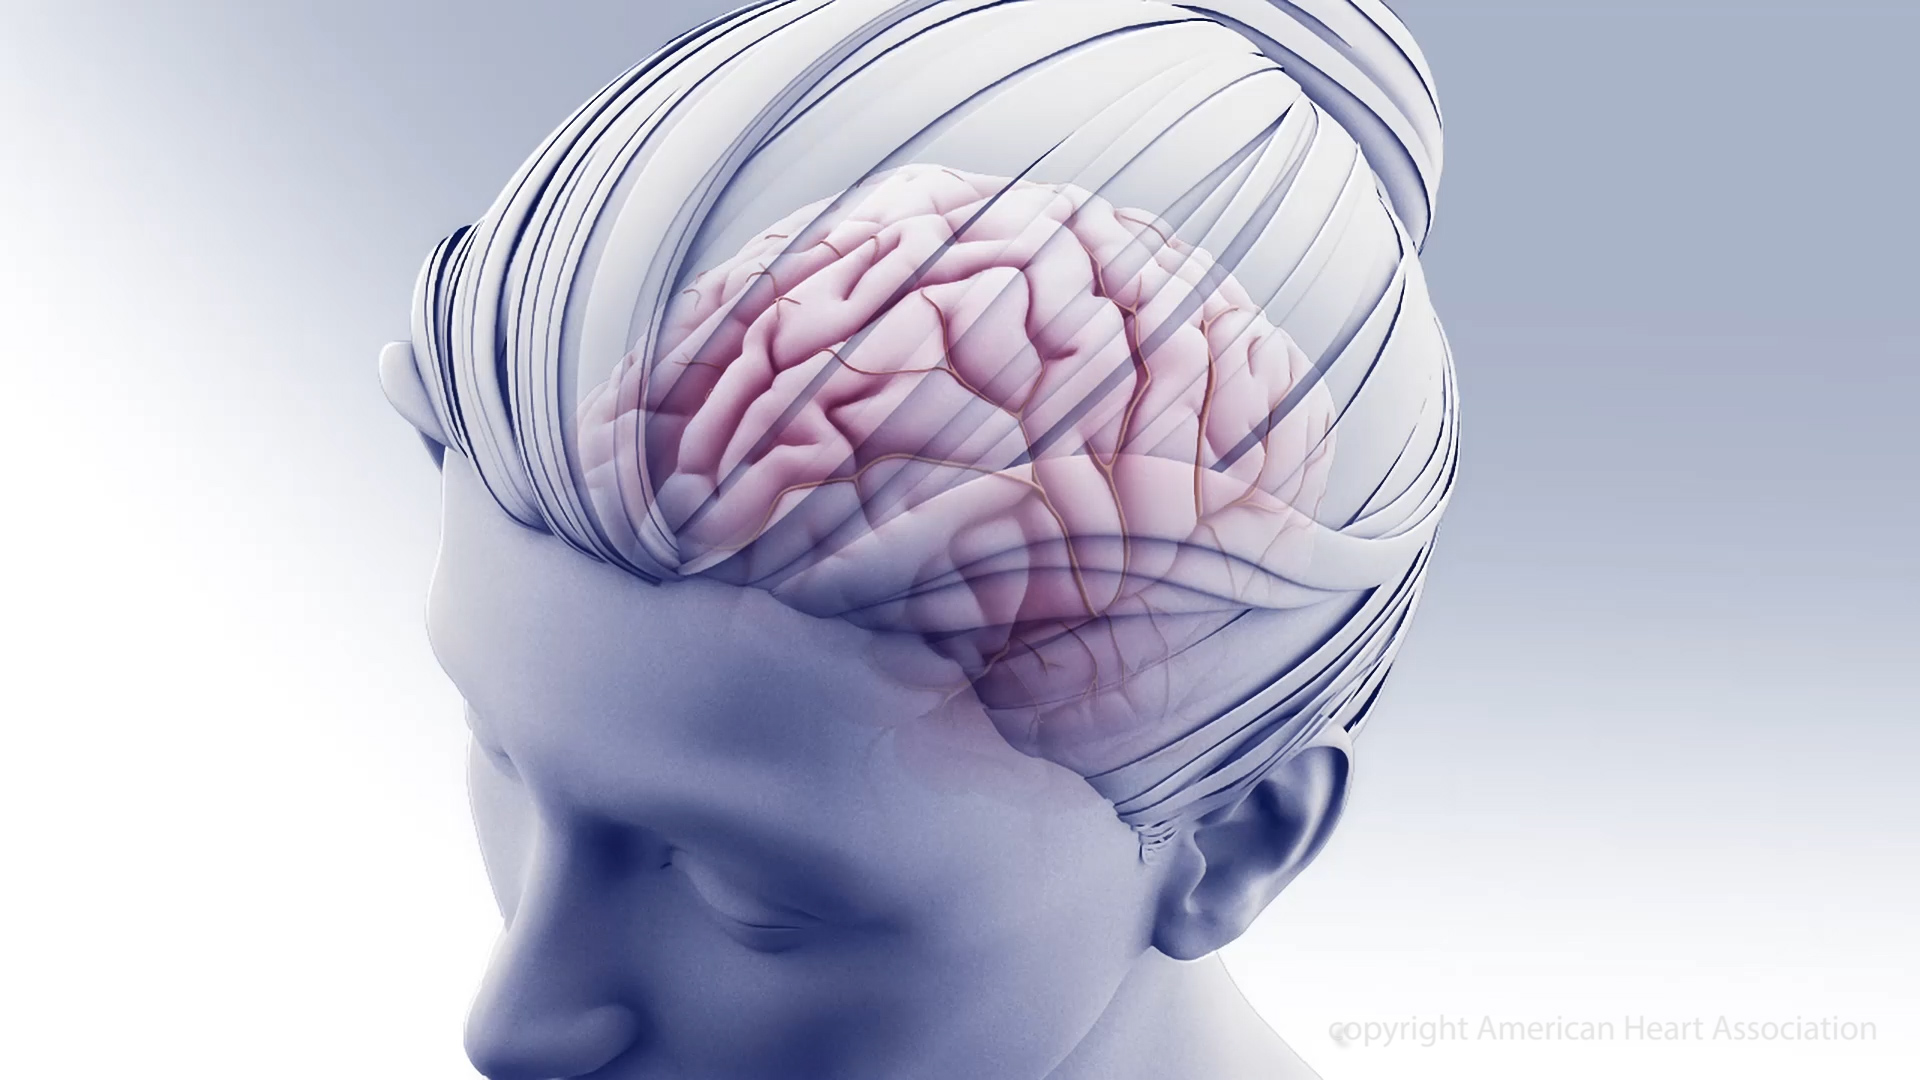 Treating high blood pressure may slow cognitive decline